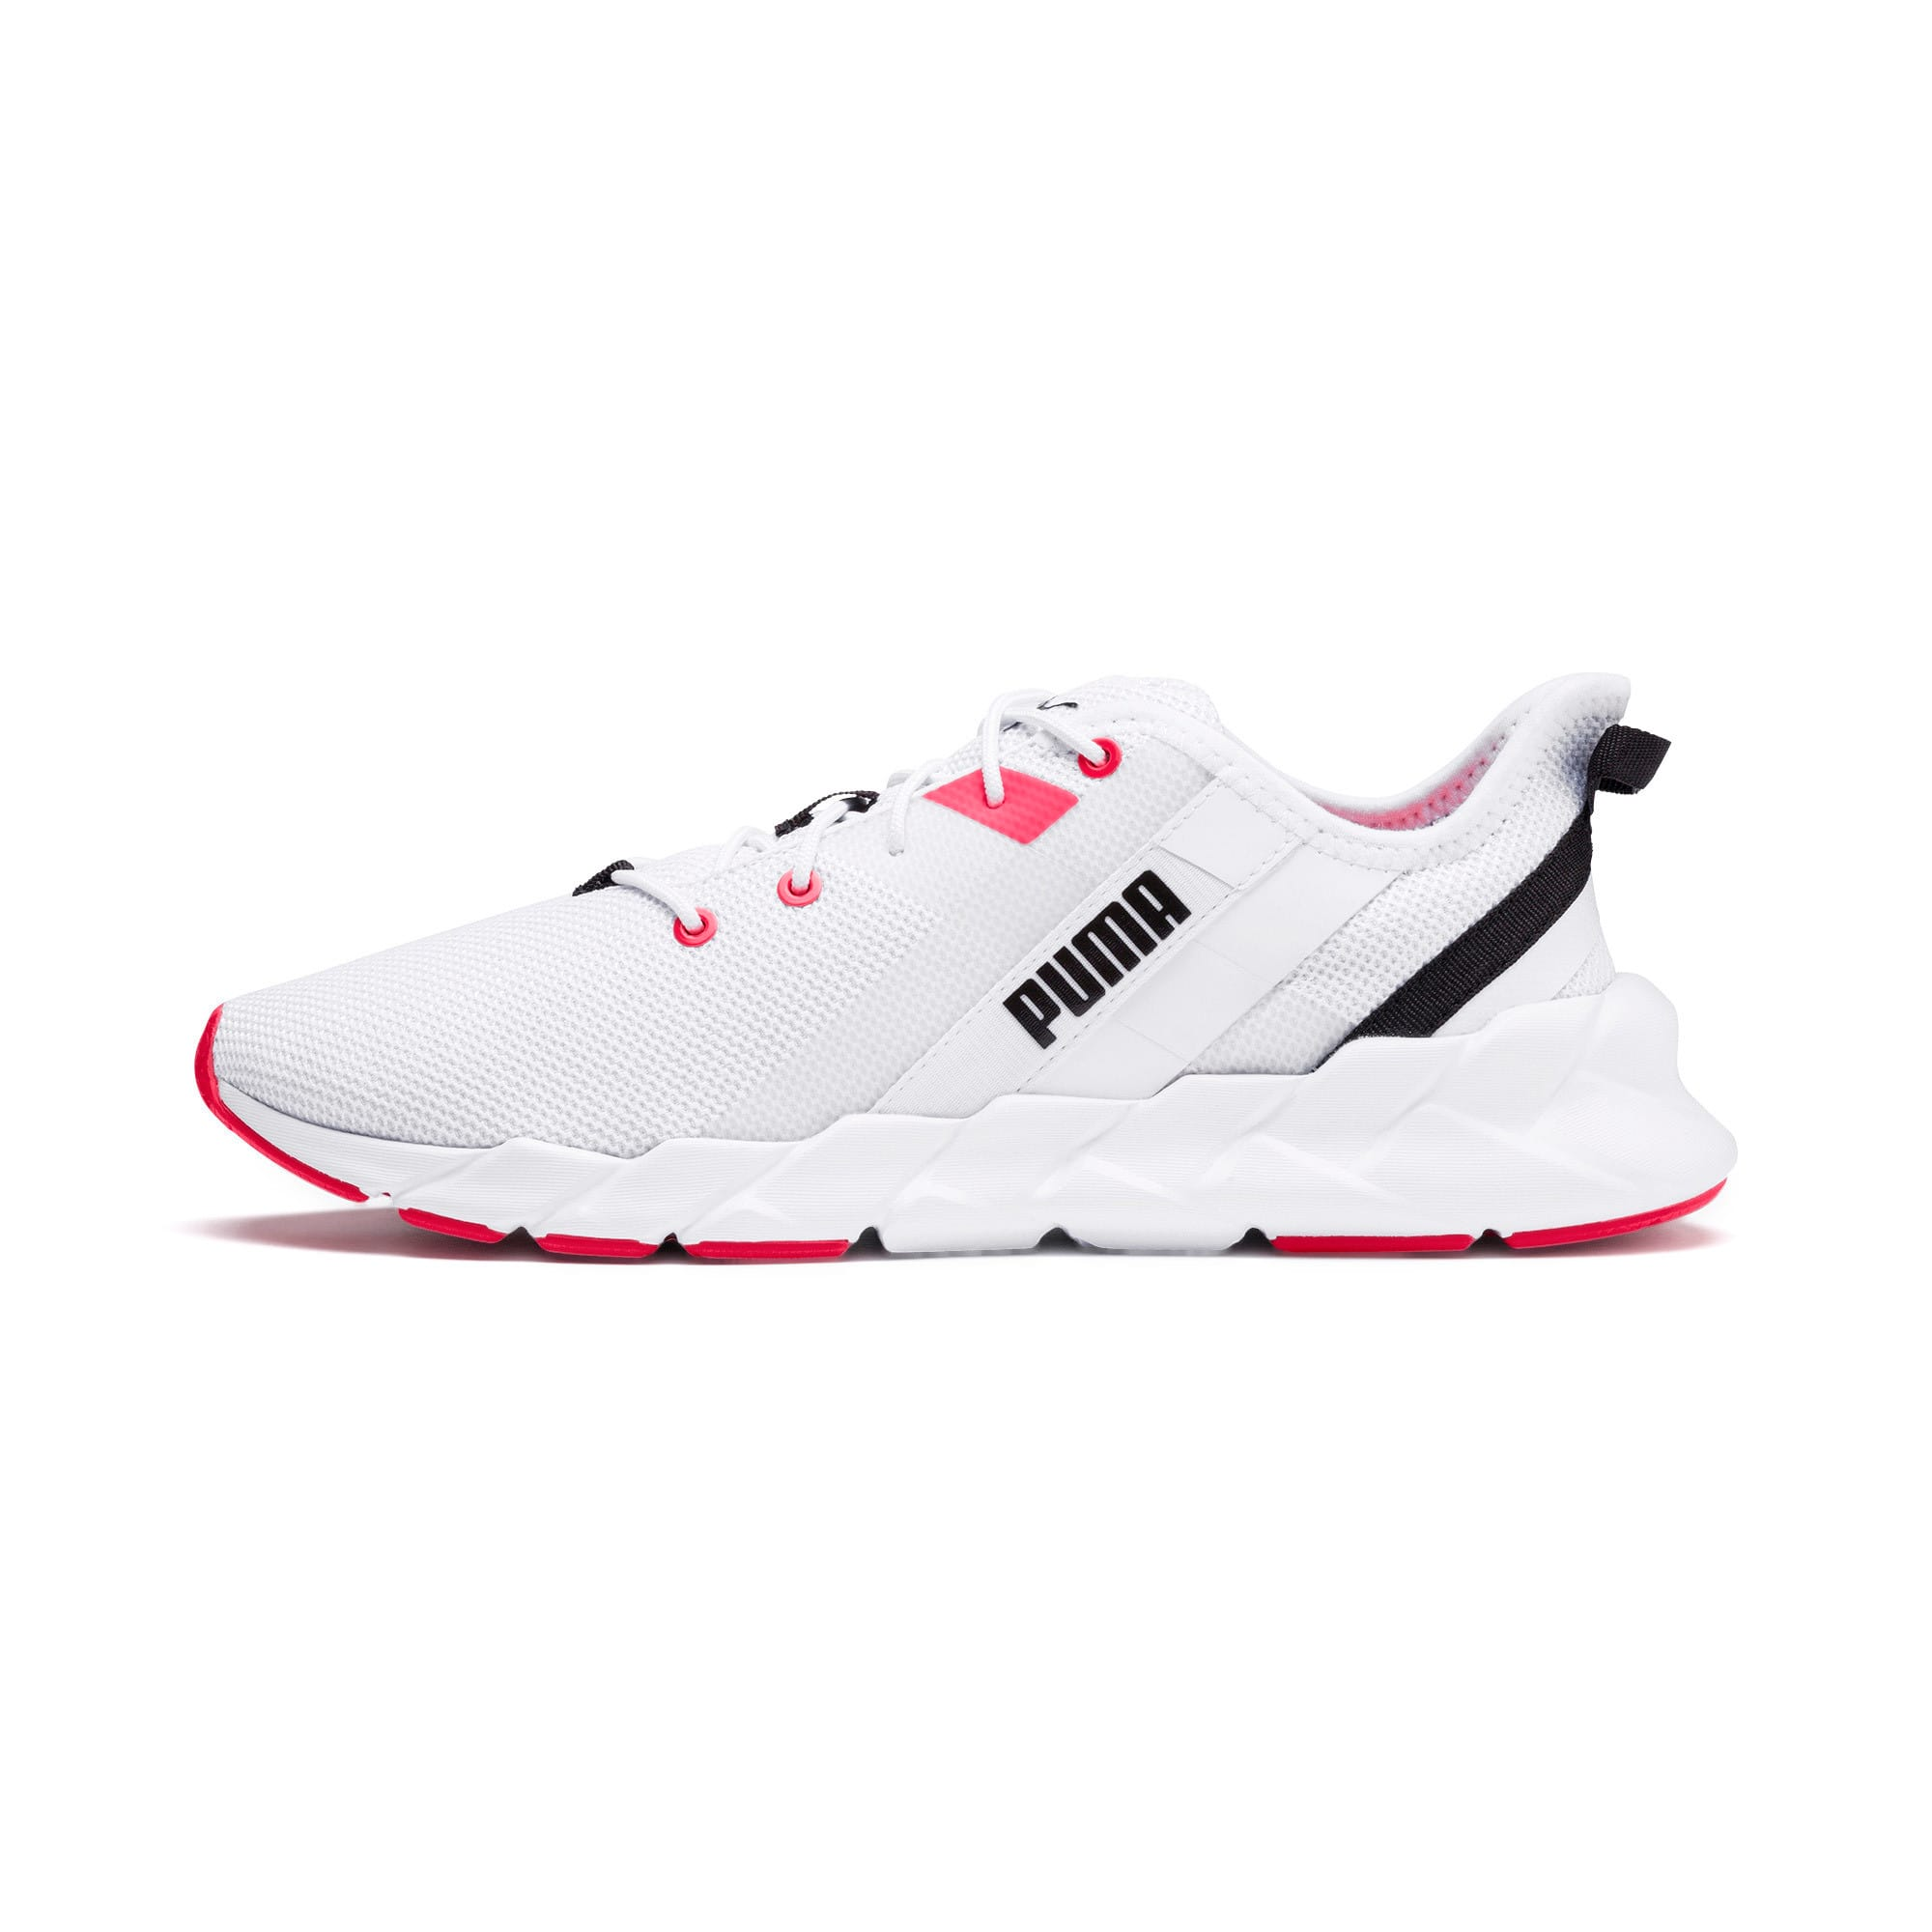 Thumbnail 1 of Weave XT Women's Training Shoes, Puma White-Pink Alert, medium